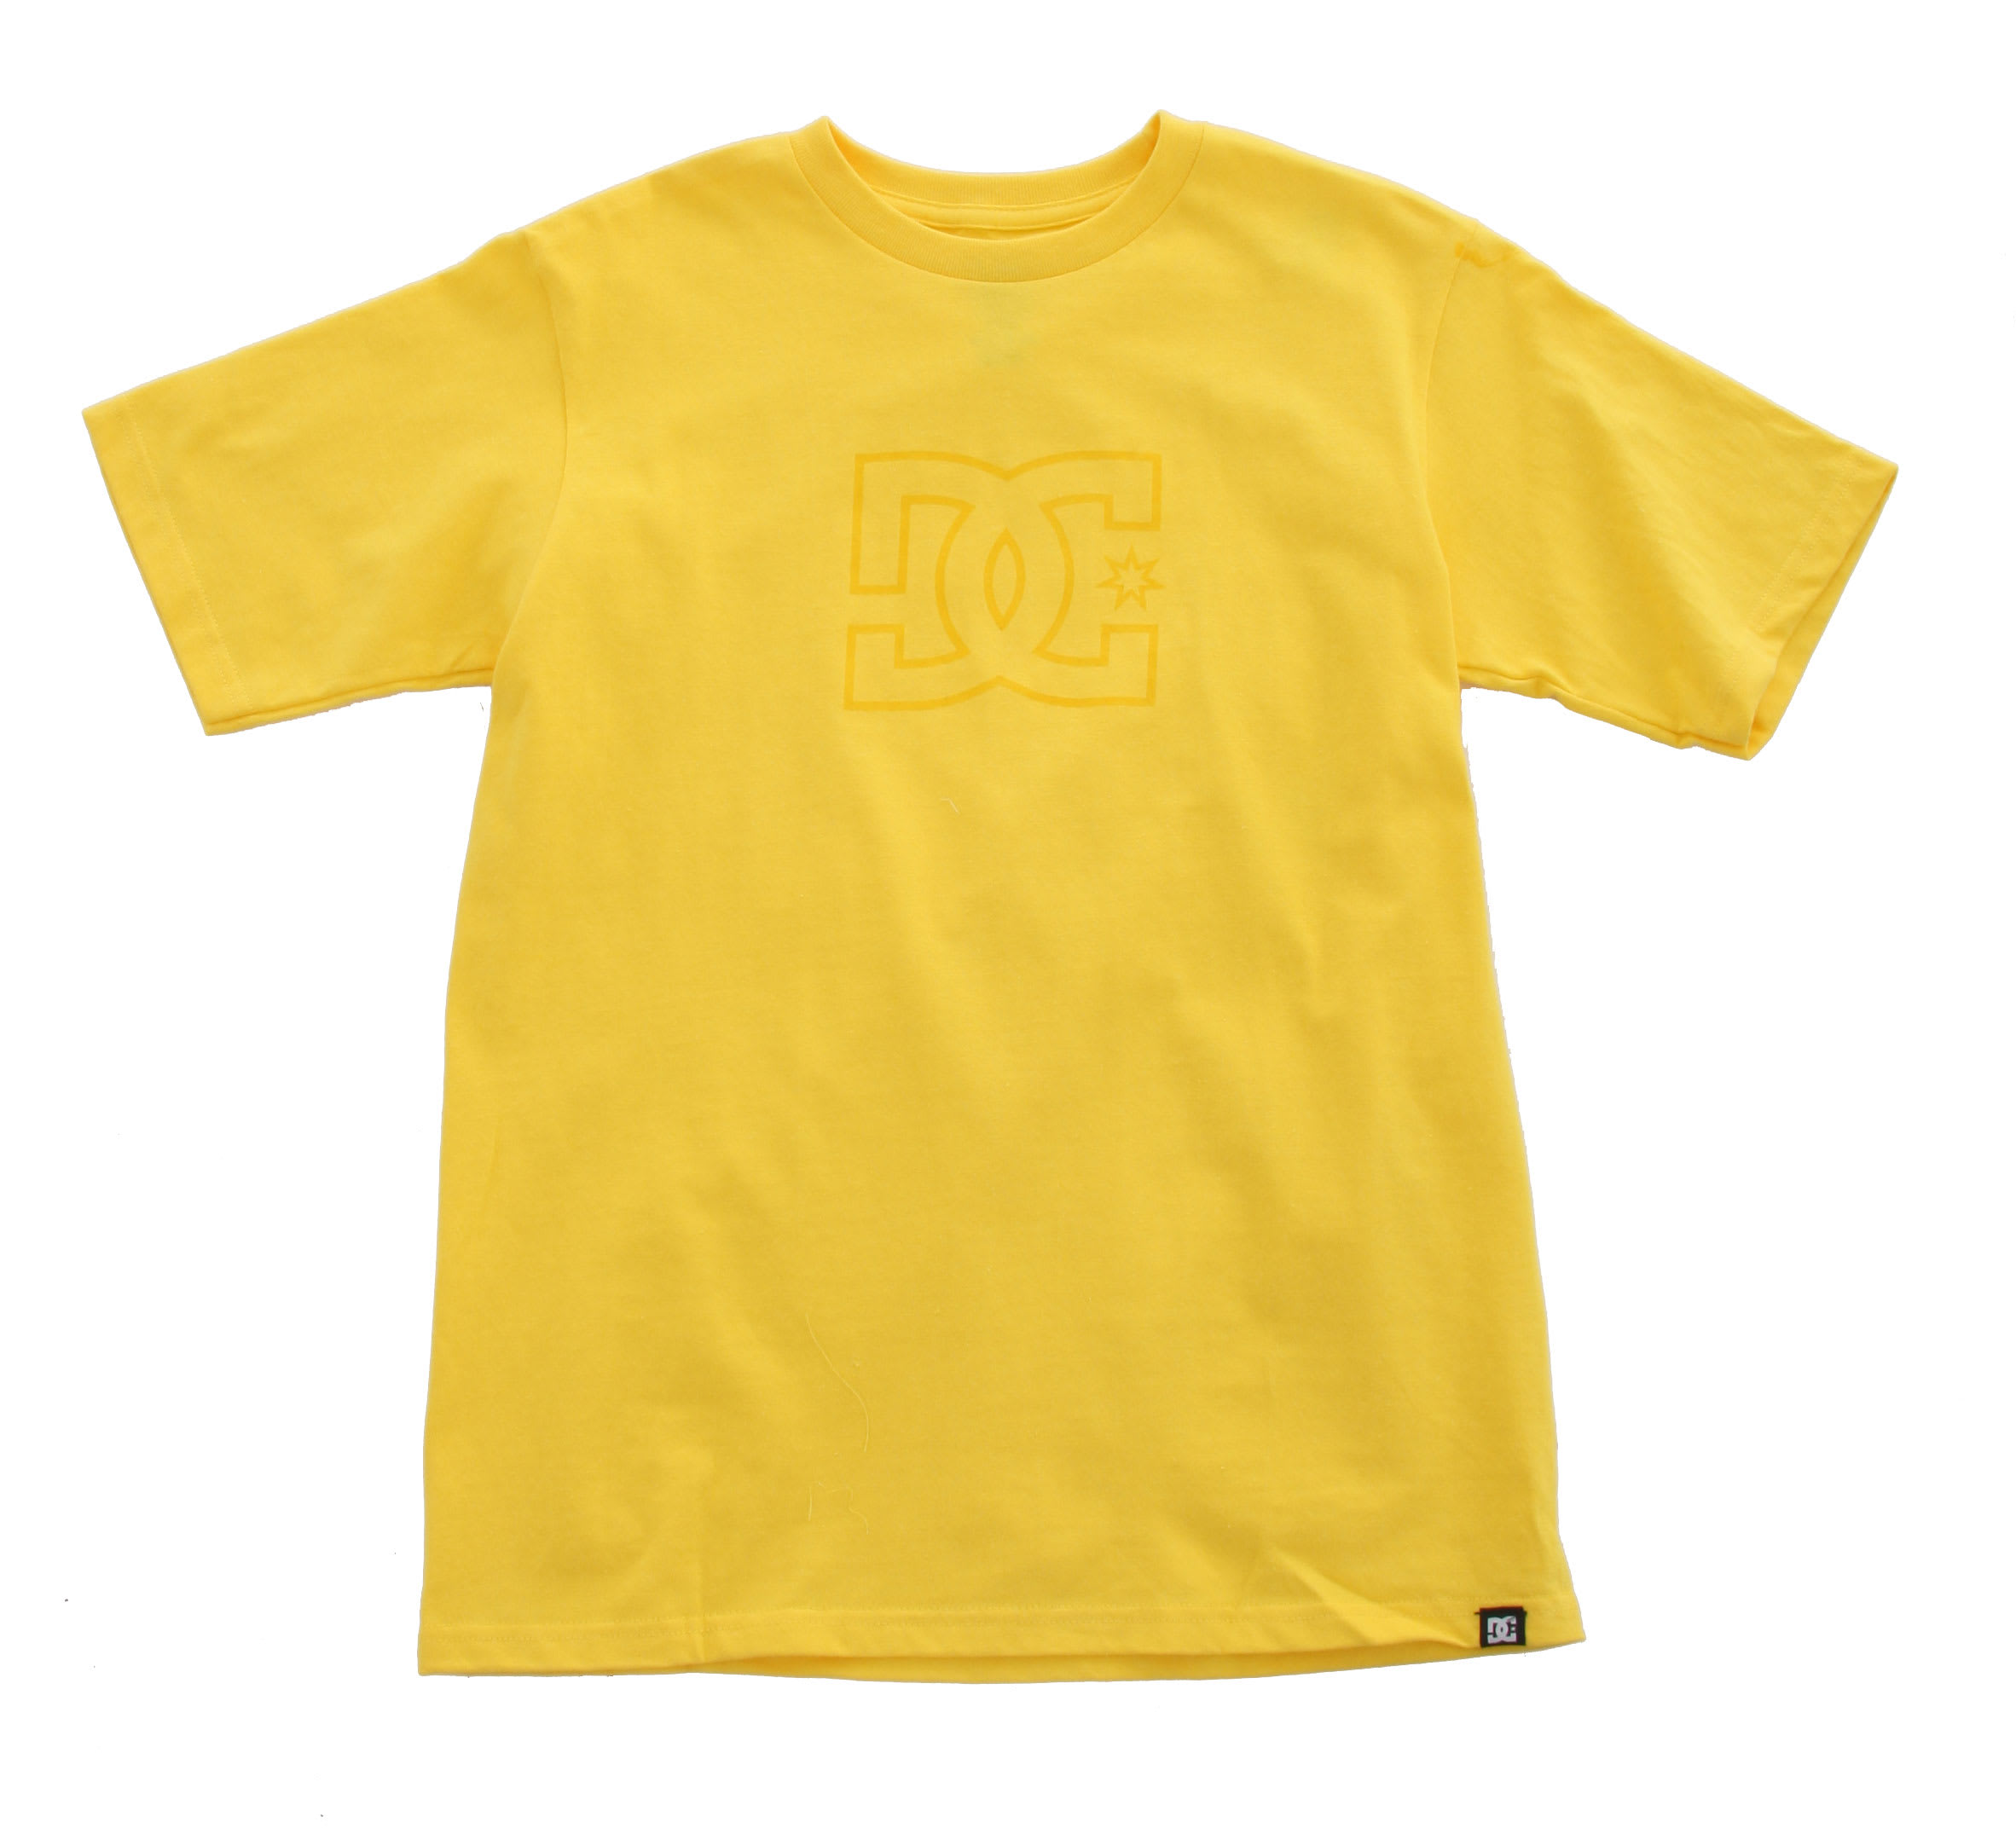 House template for kids search results calendar 2015 for Yellow t shirt for kids